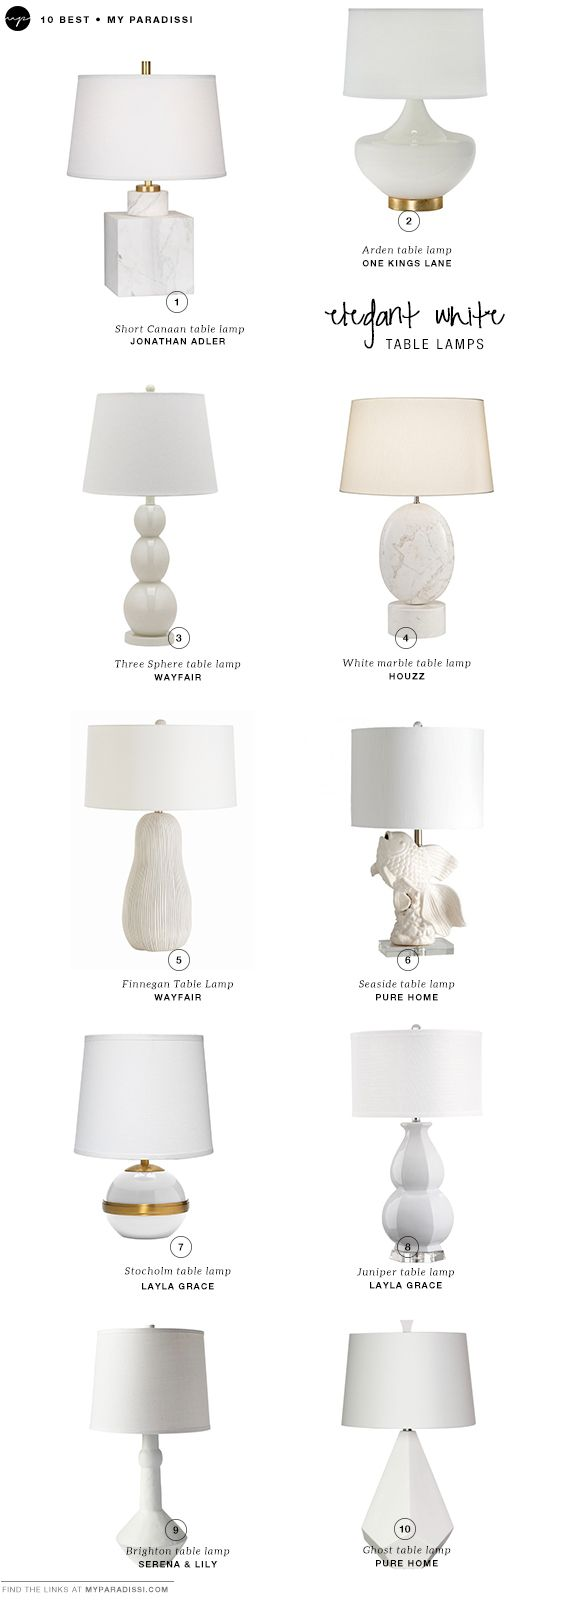 10 BEST: Elegant white table lamps